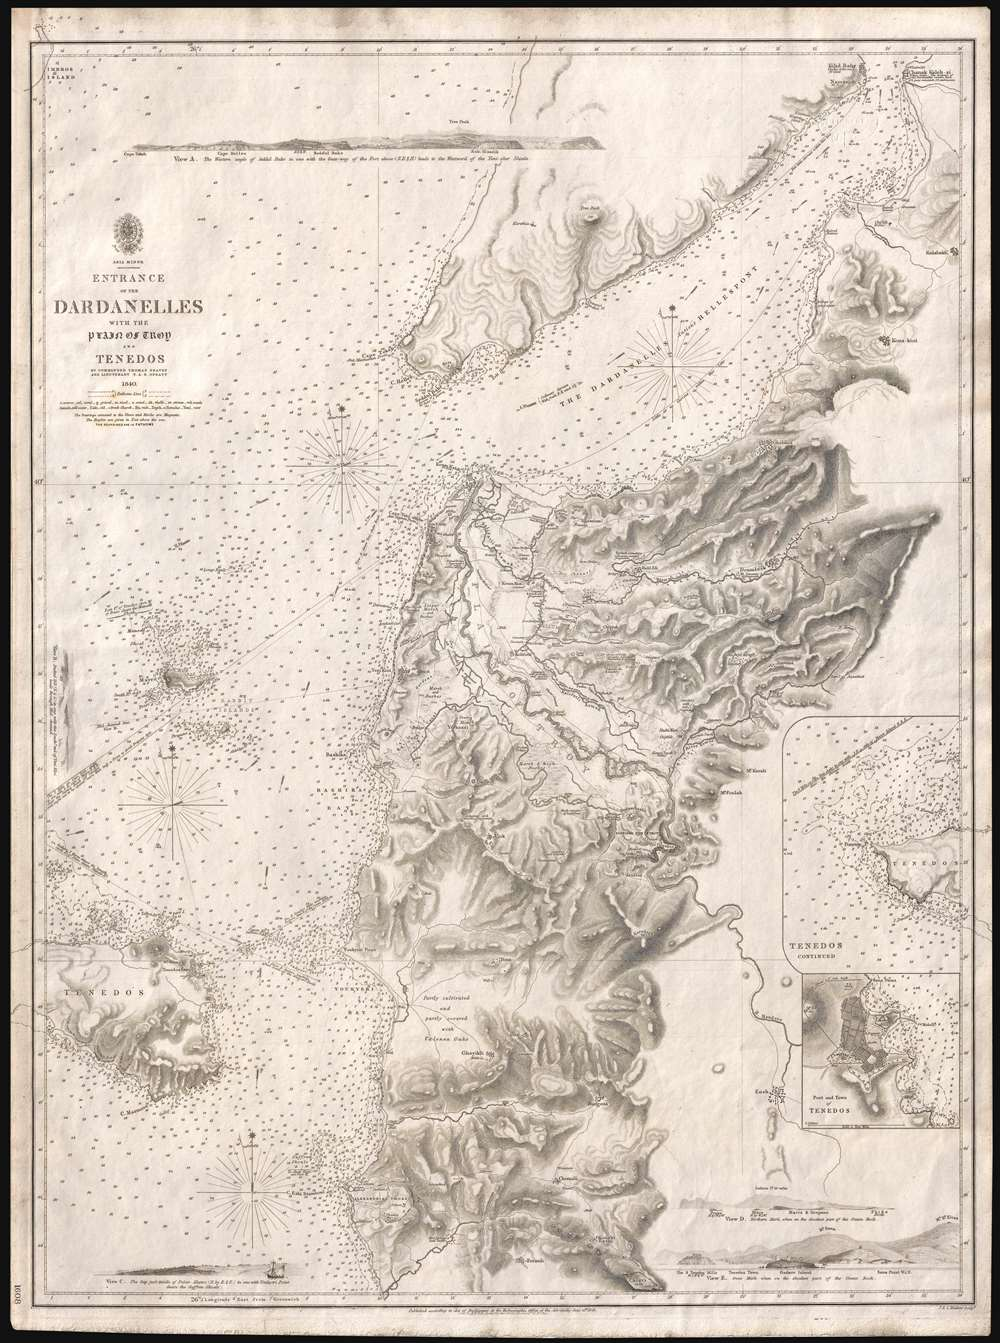 1844 'Spratt Map' of the Dardanelles and the Troad - led to discovery of Troy!